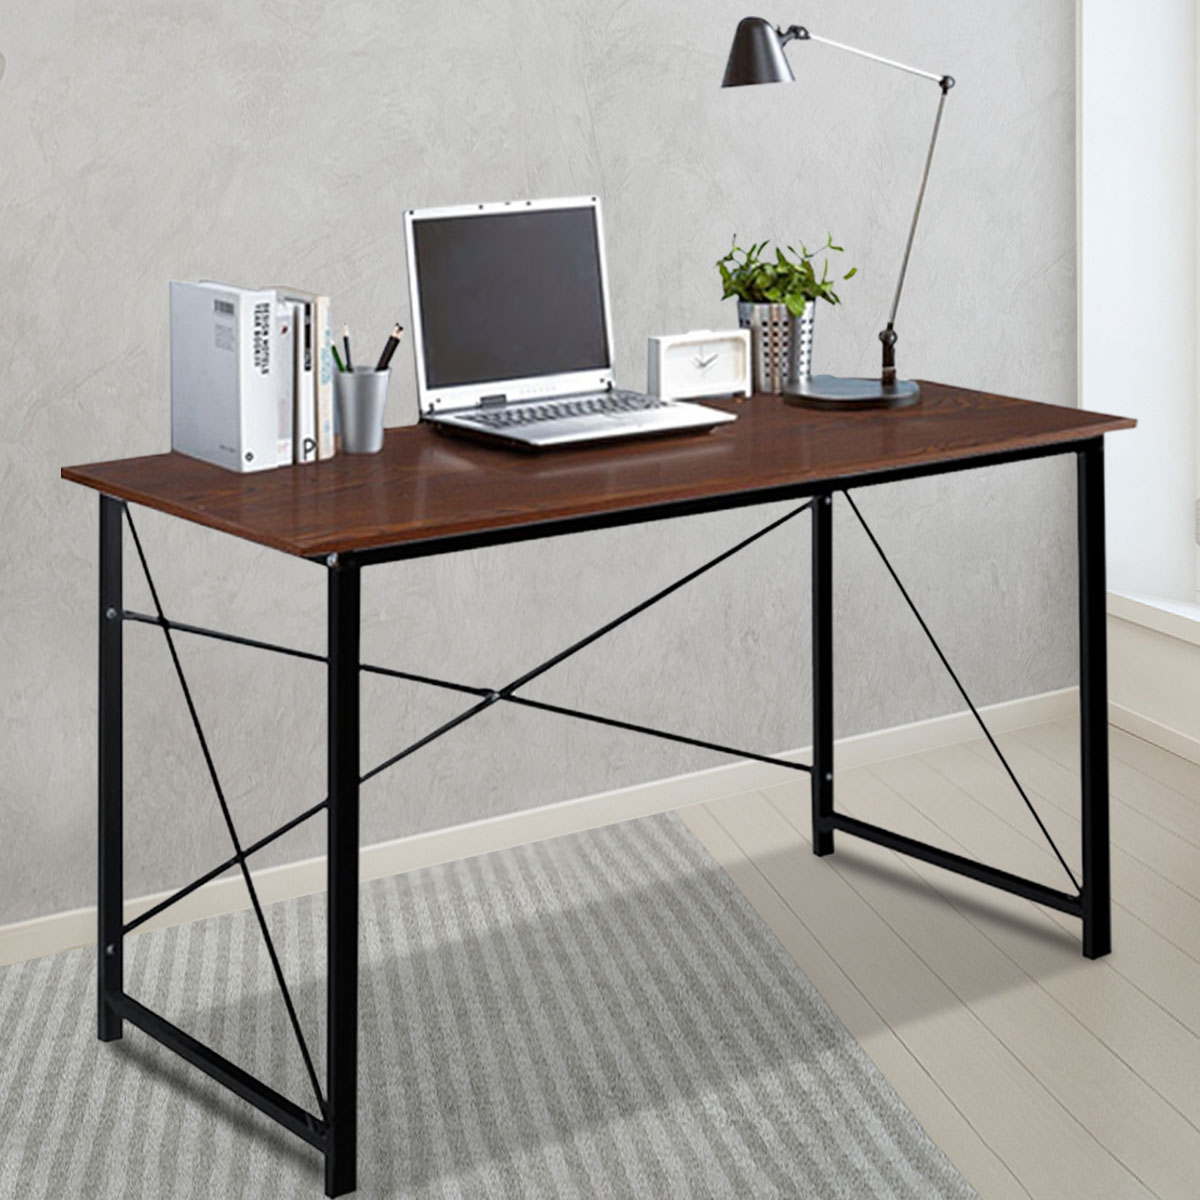 Wood Laptop Desk Laptop Bed Table Standing Desk Laptop Stand Mesa Study Table Laptop Table Computer Desk Computer Table